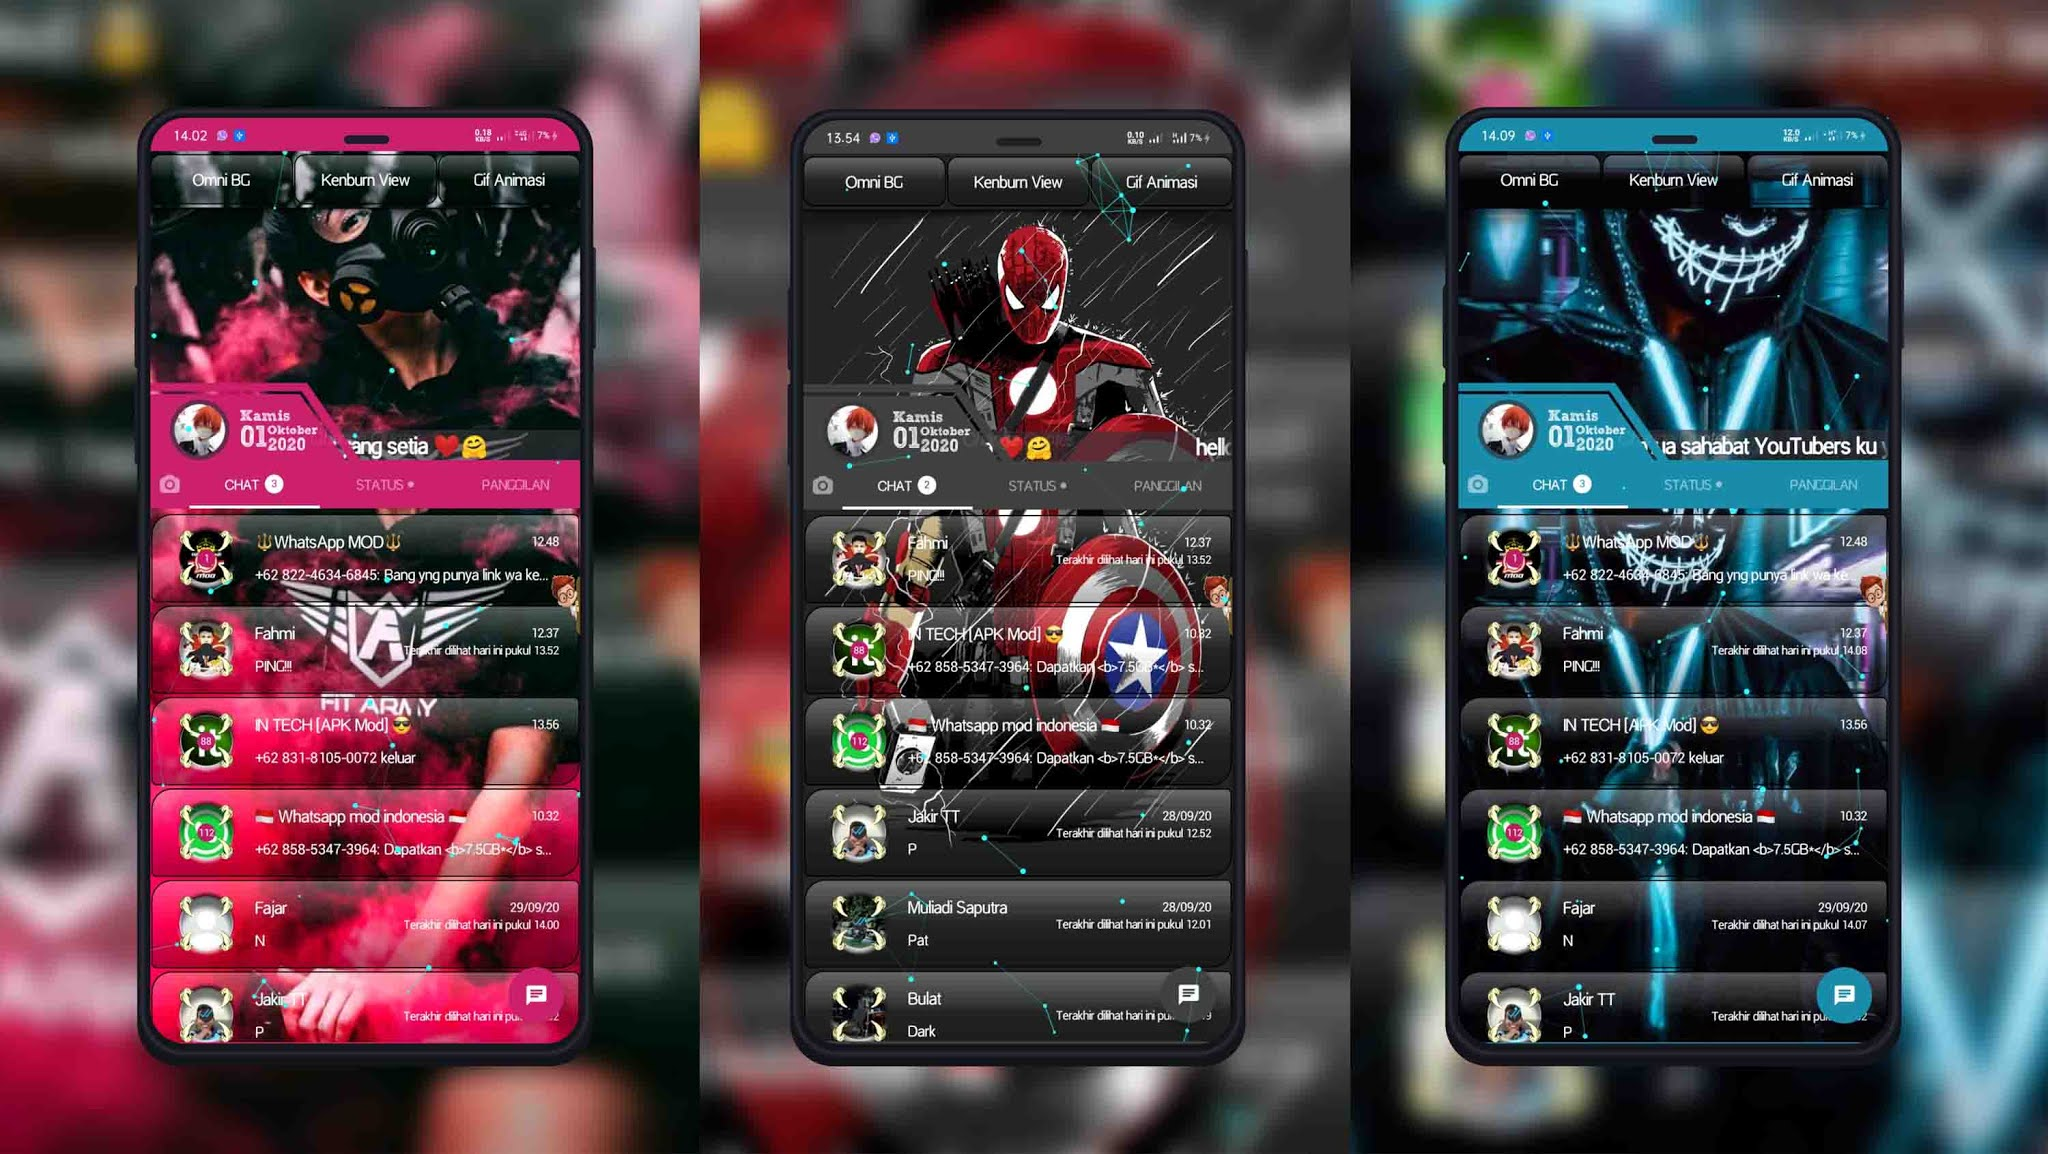 Download the MJW GB WhatsApp Theme for the Cooler 20 Display